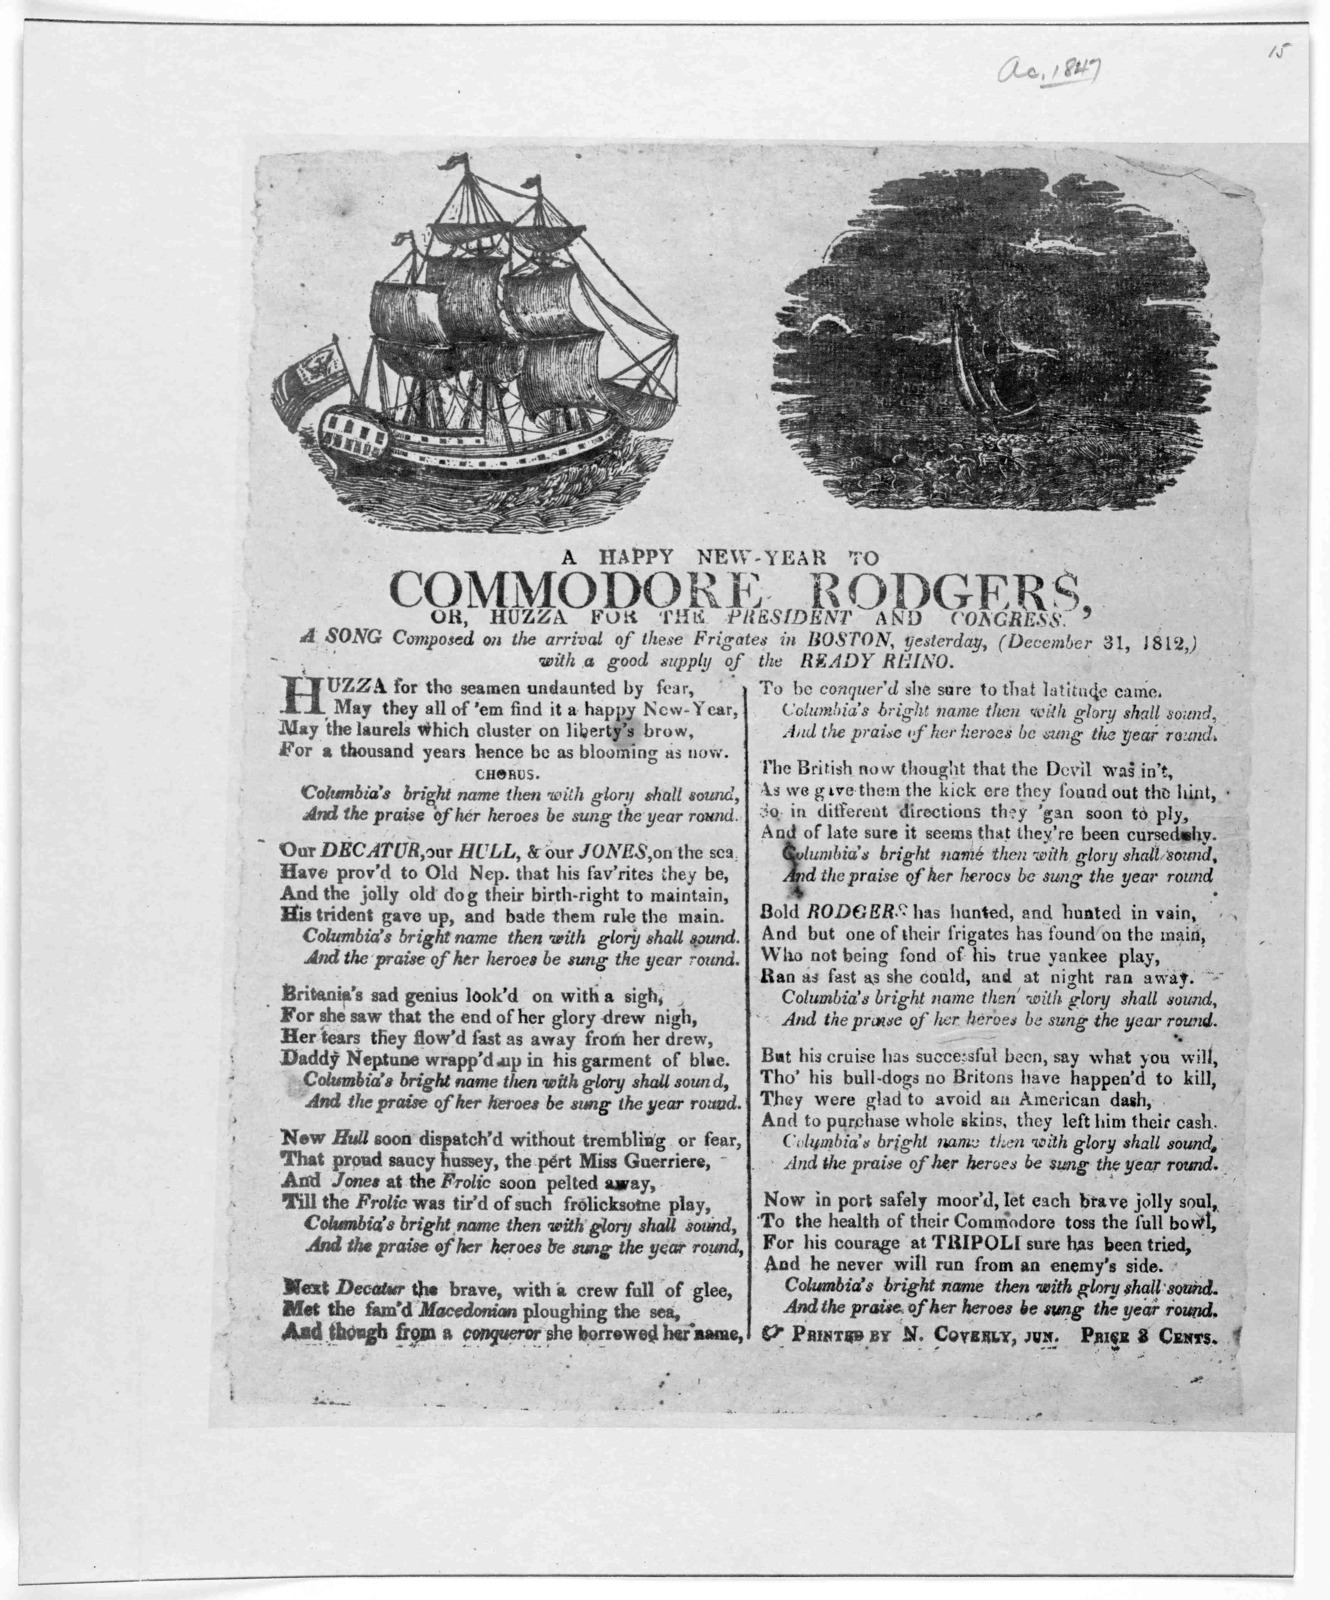 [Cuts] A happy new-year to Commodore Rodgers, or, Huzza for the president and Congress. A song composed on the arrival of those frigates in Boston yesterday, (December 31, 1812,) with a good supply of the Ready Rhino [Boston] Printed by N. Cover